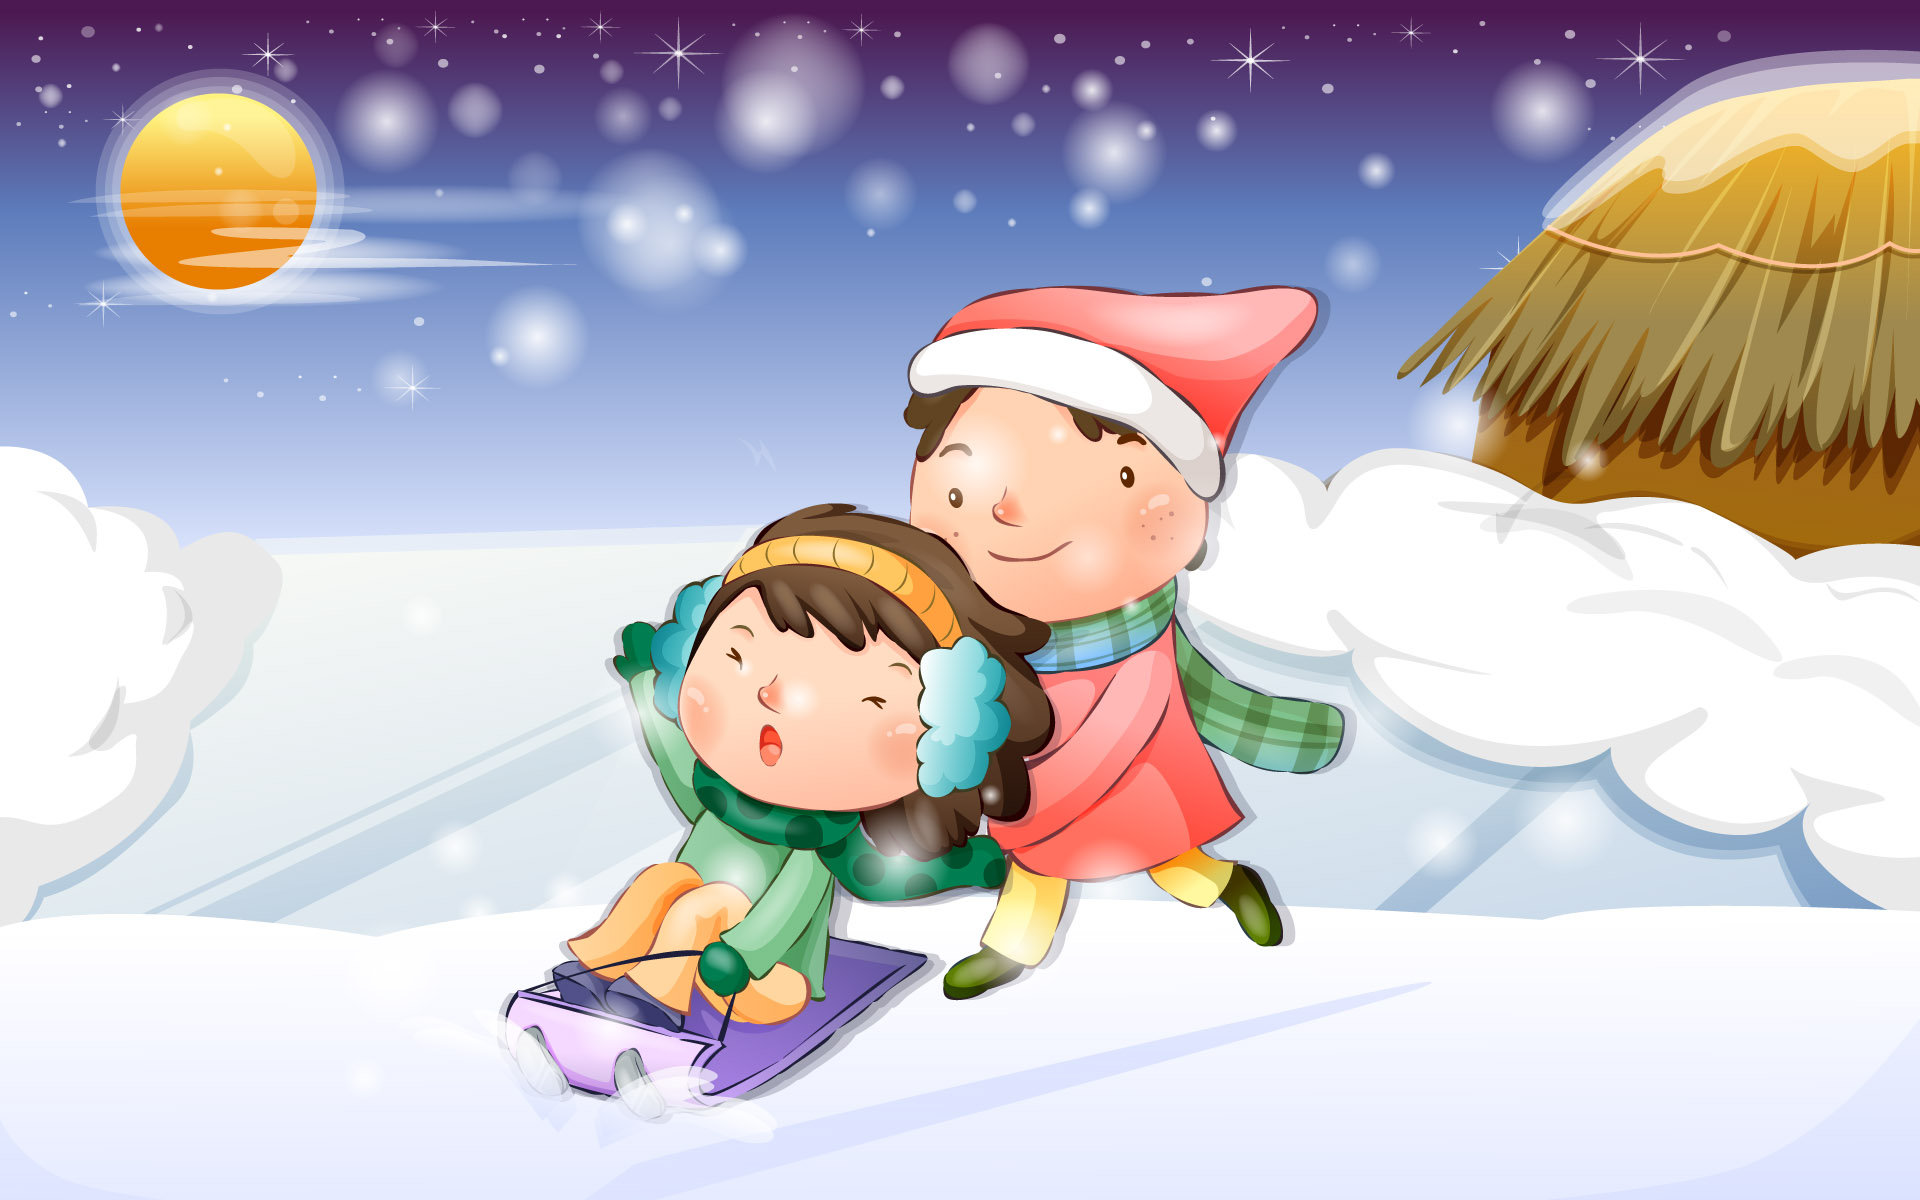 Happy childhood Christmas illustration articles 13242